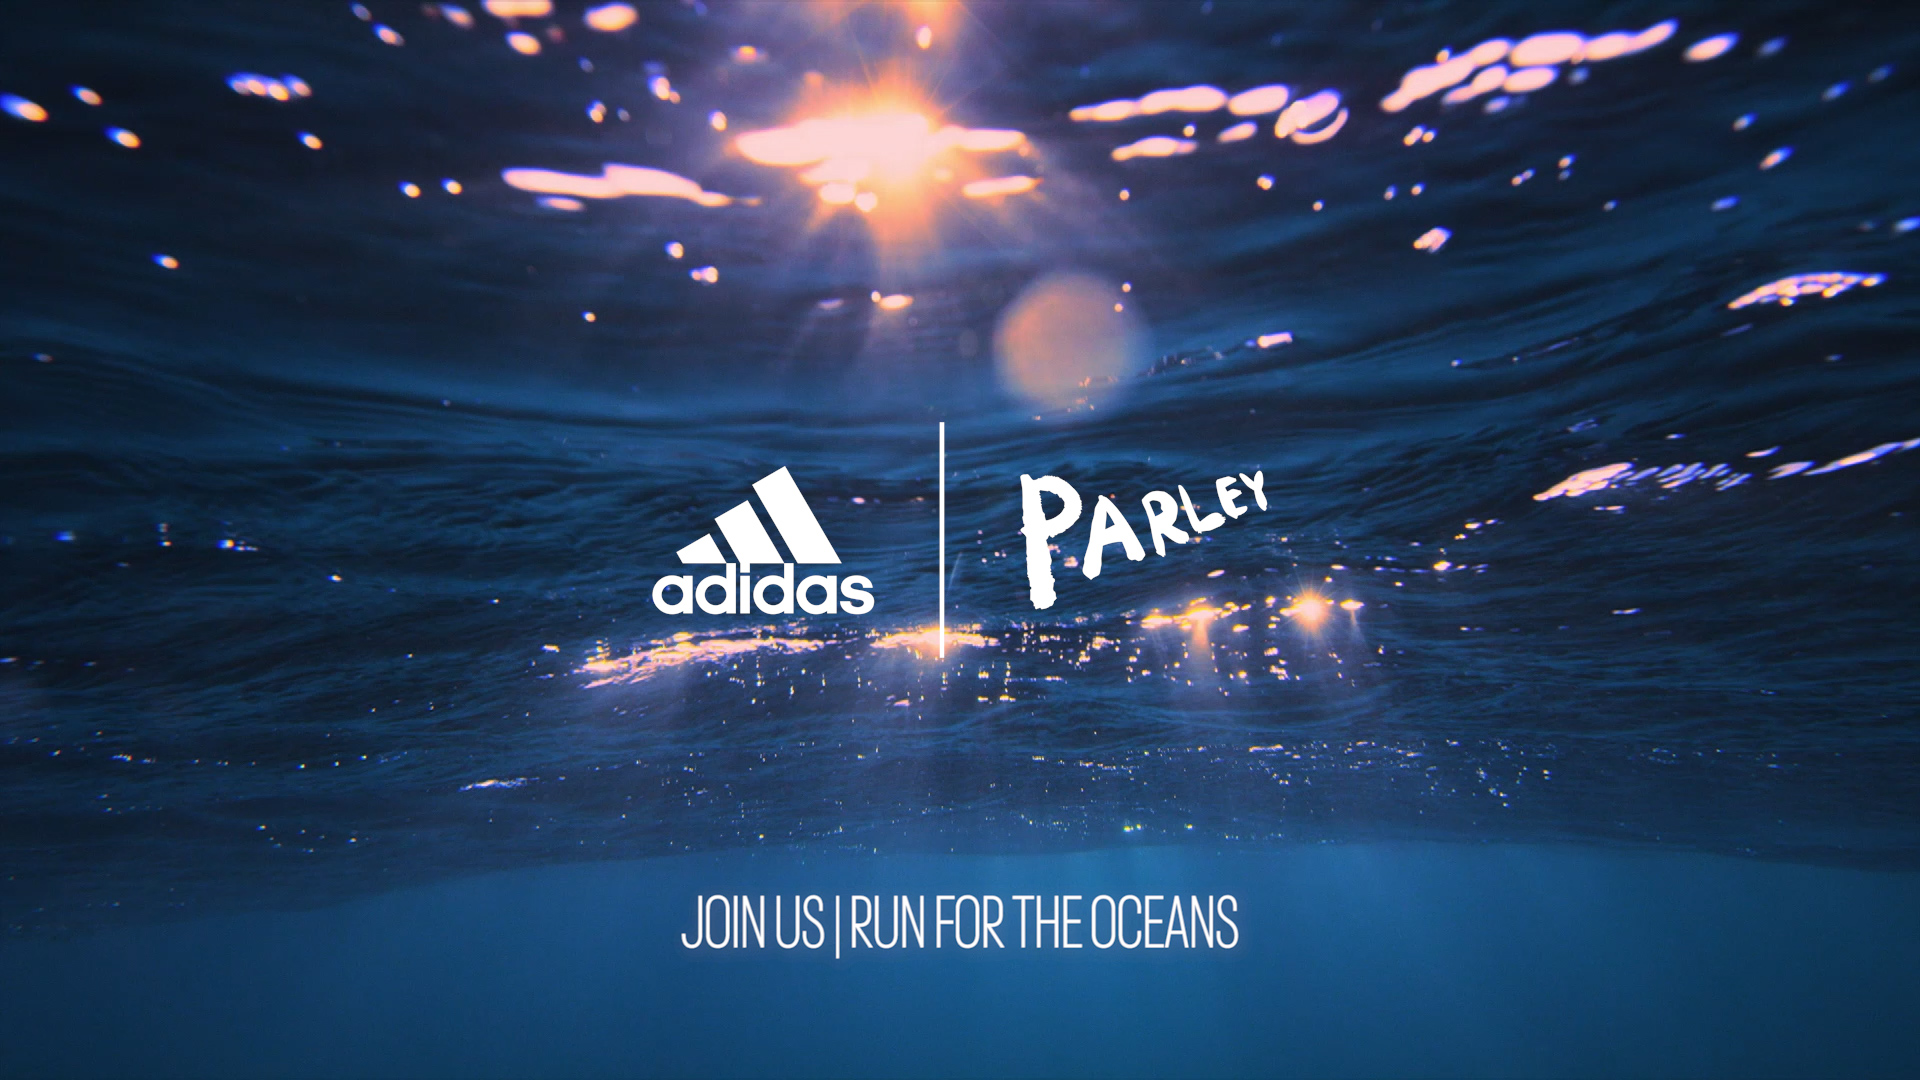 Run for the Oceans with Adidas x Parley